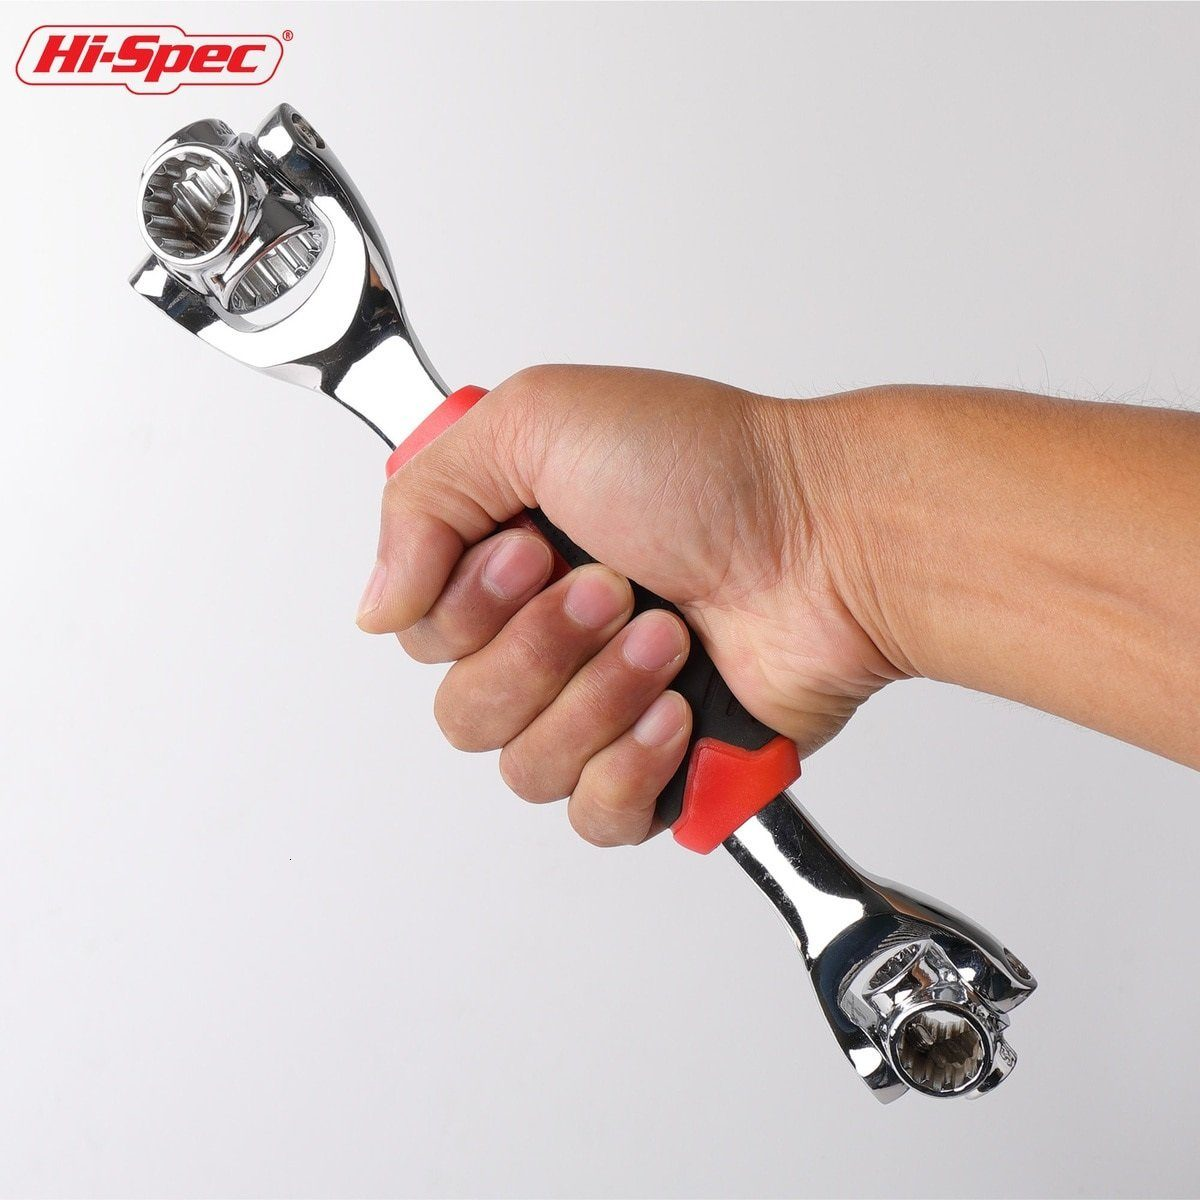 Hi-Spec Wrench 48 in 1 Narzorz